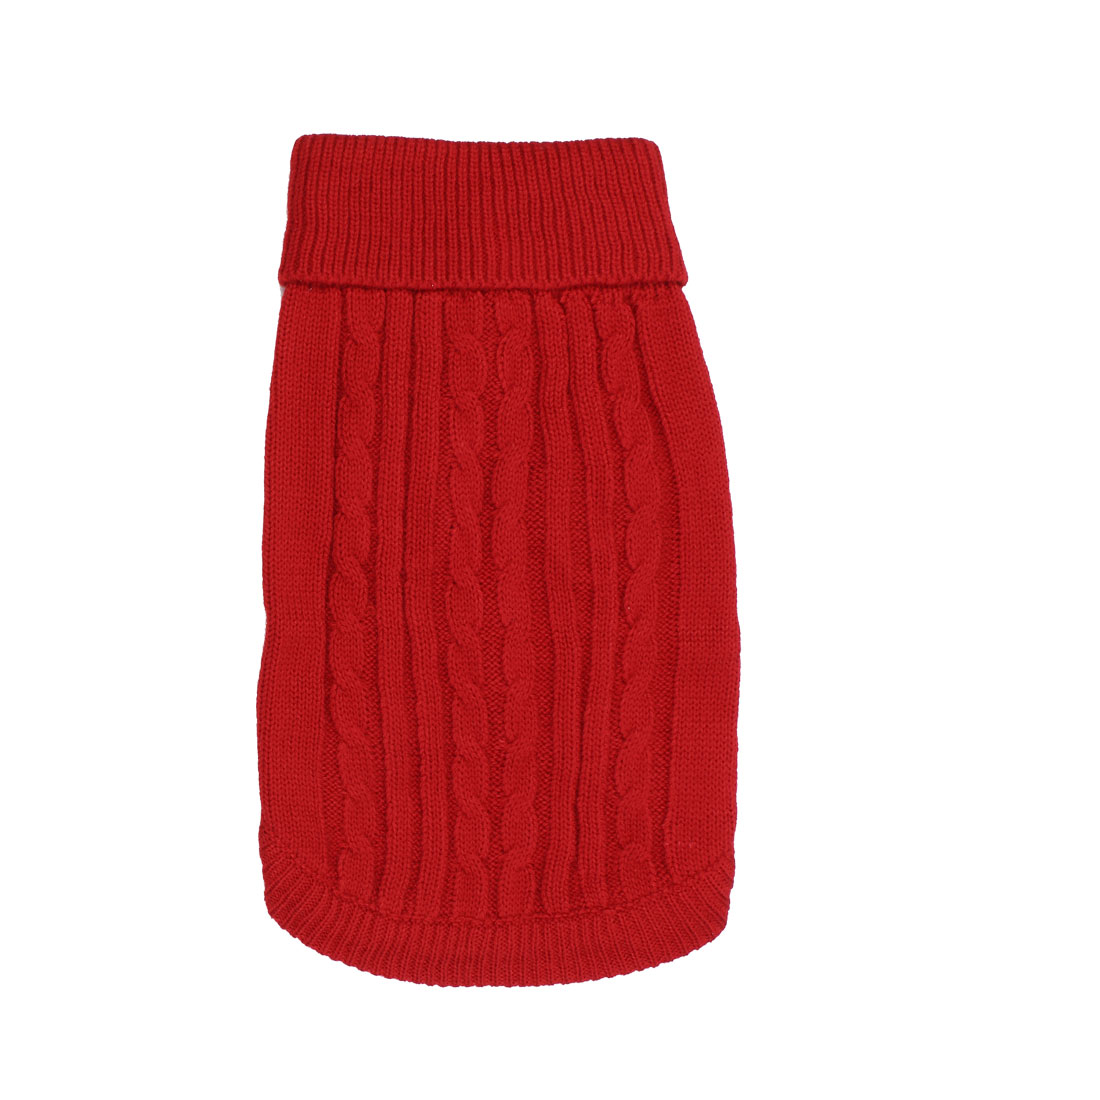 Pet Dog Ribbed Cuff Twisted Warm Turtleneck Apparel Knitwear Sweater Red Size M